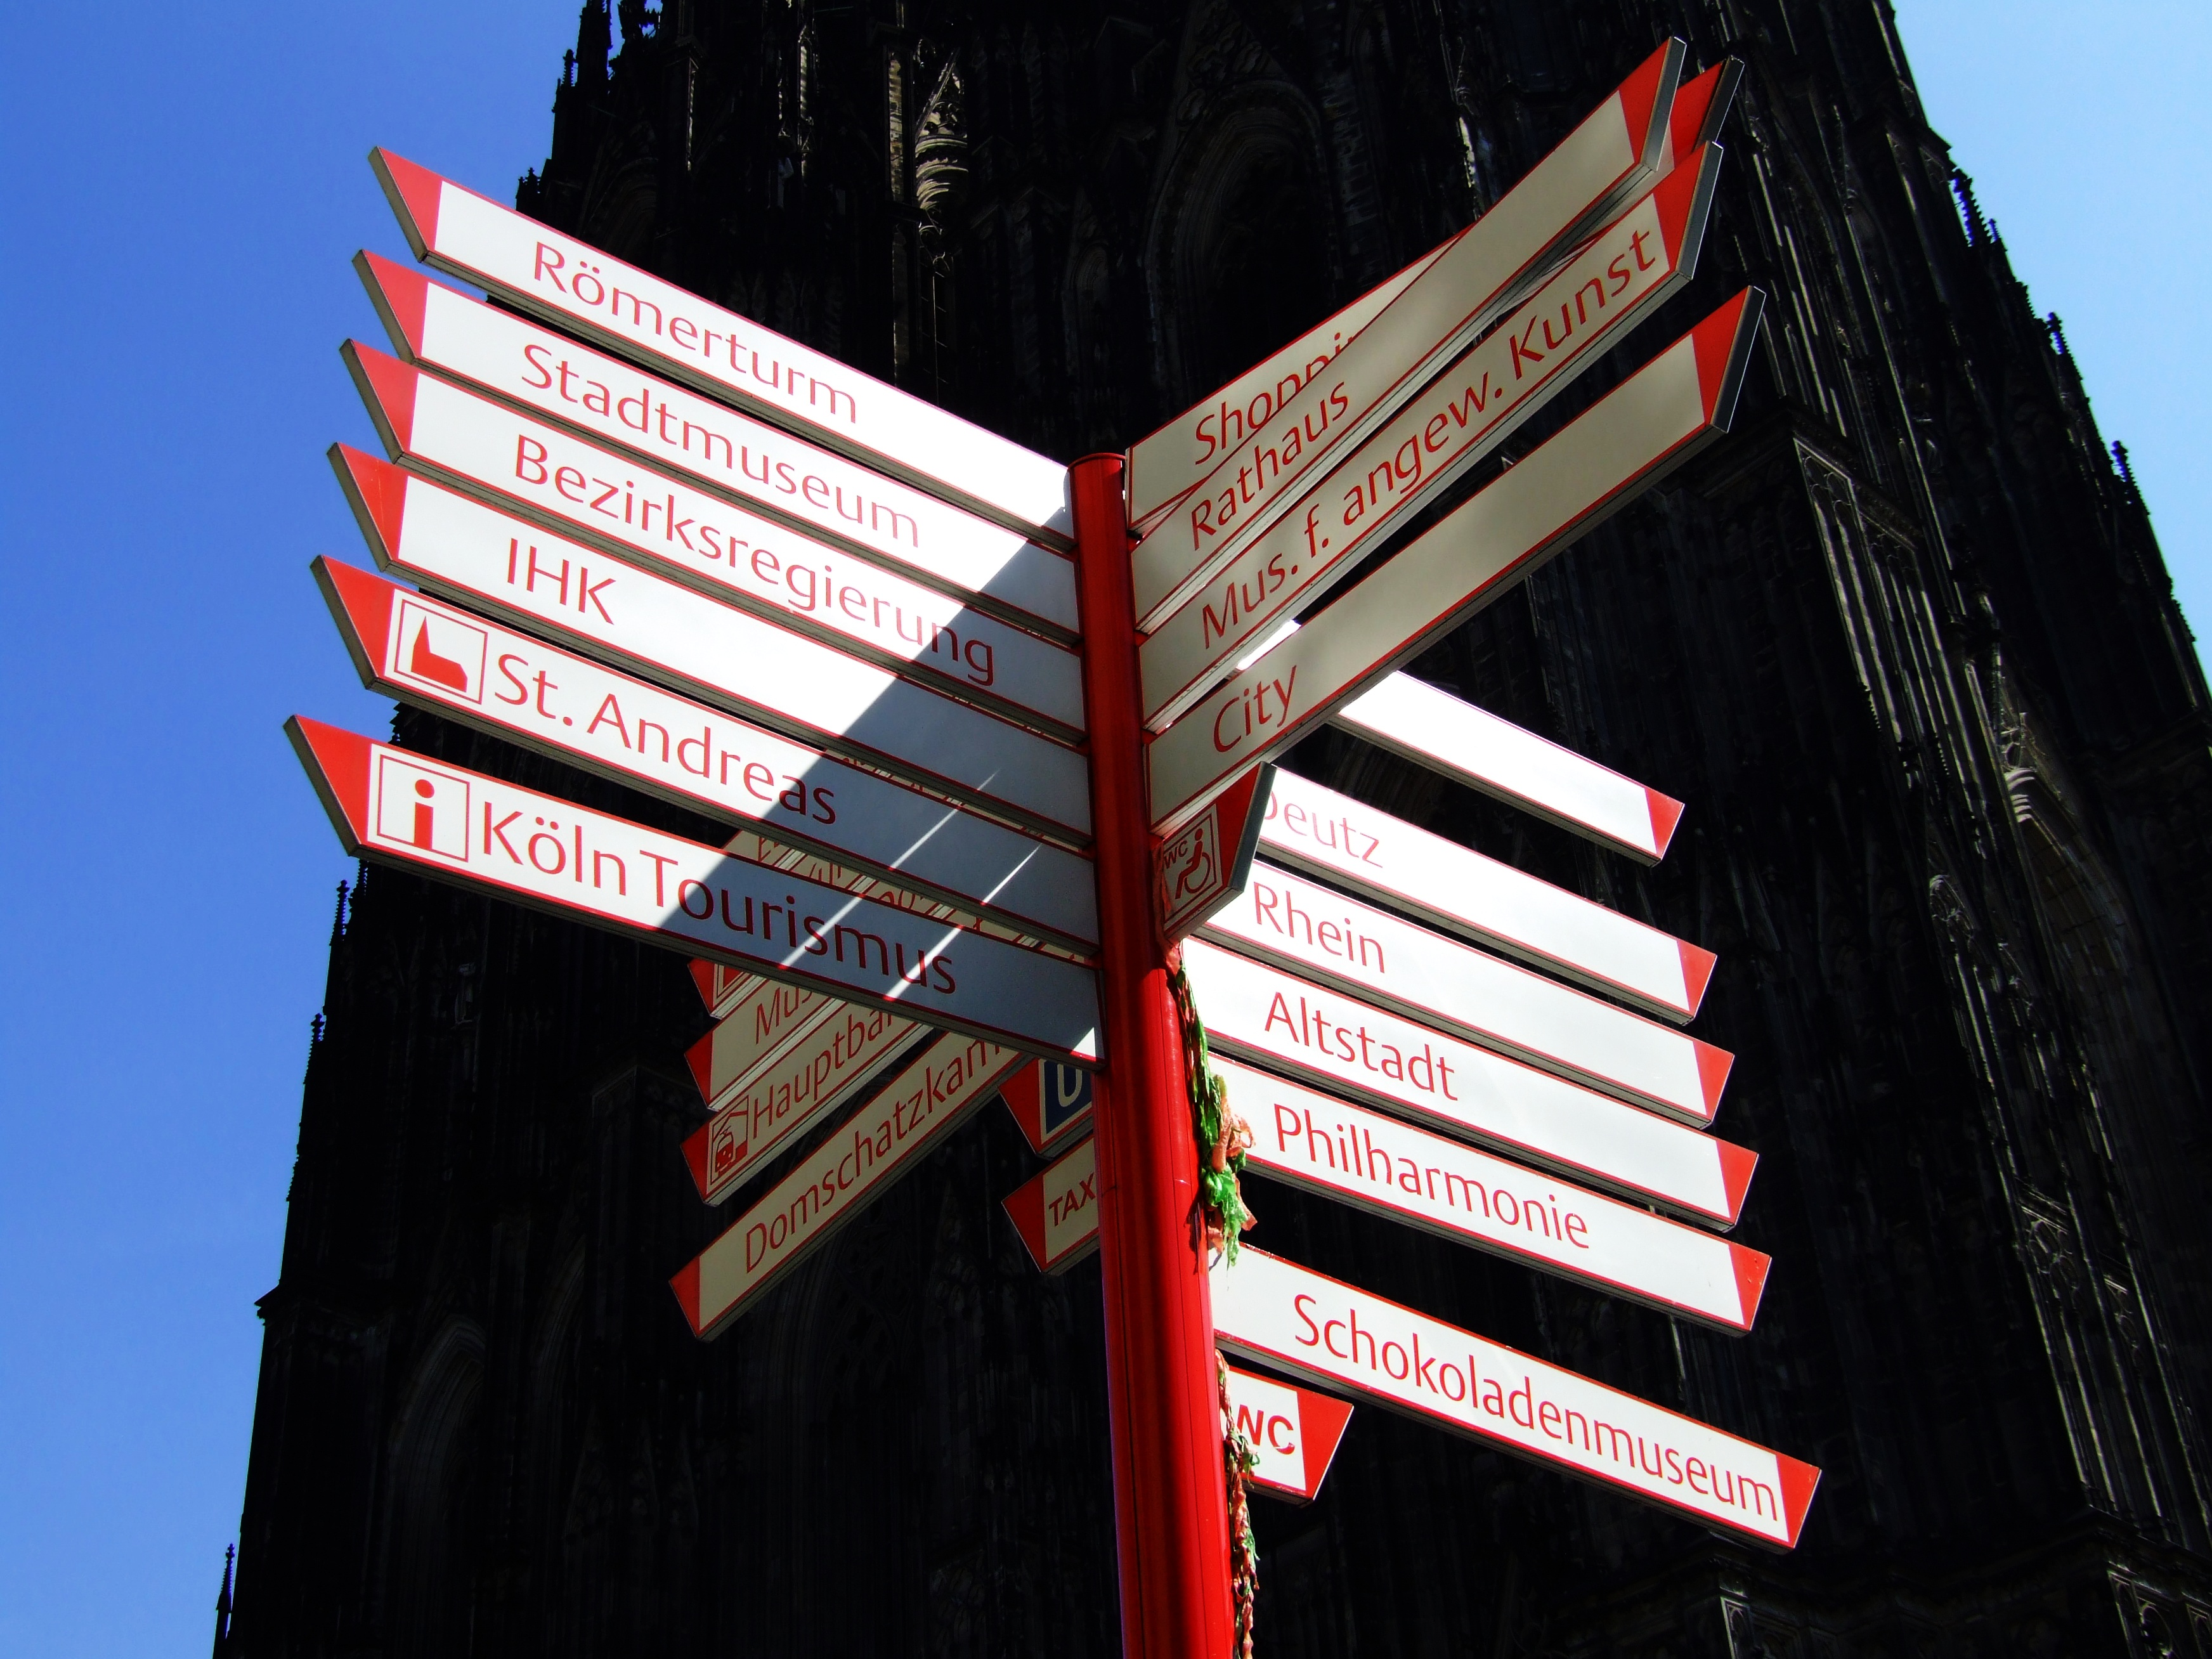 cologne direction signs flickr photo sharing. Black Bedroom Furniture Sets. Home Design Ideas